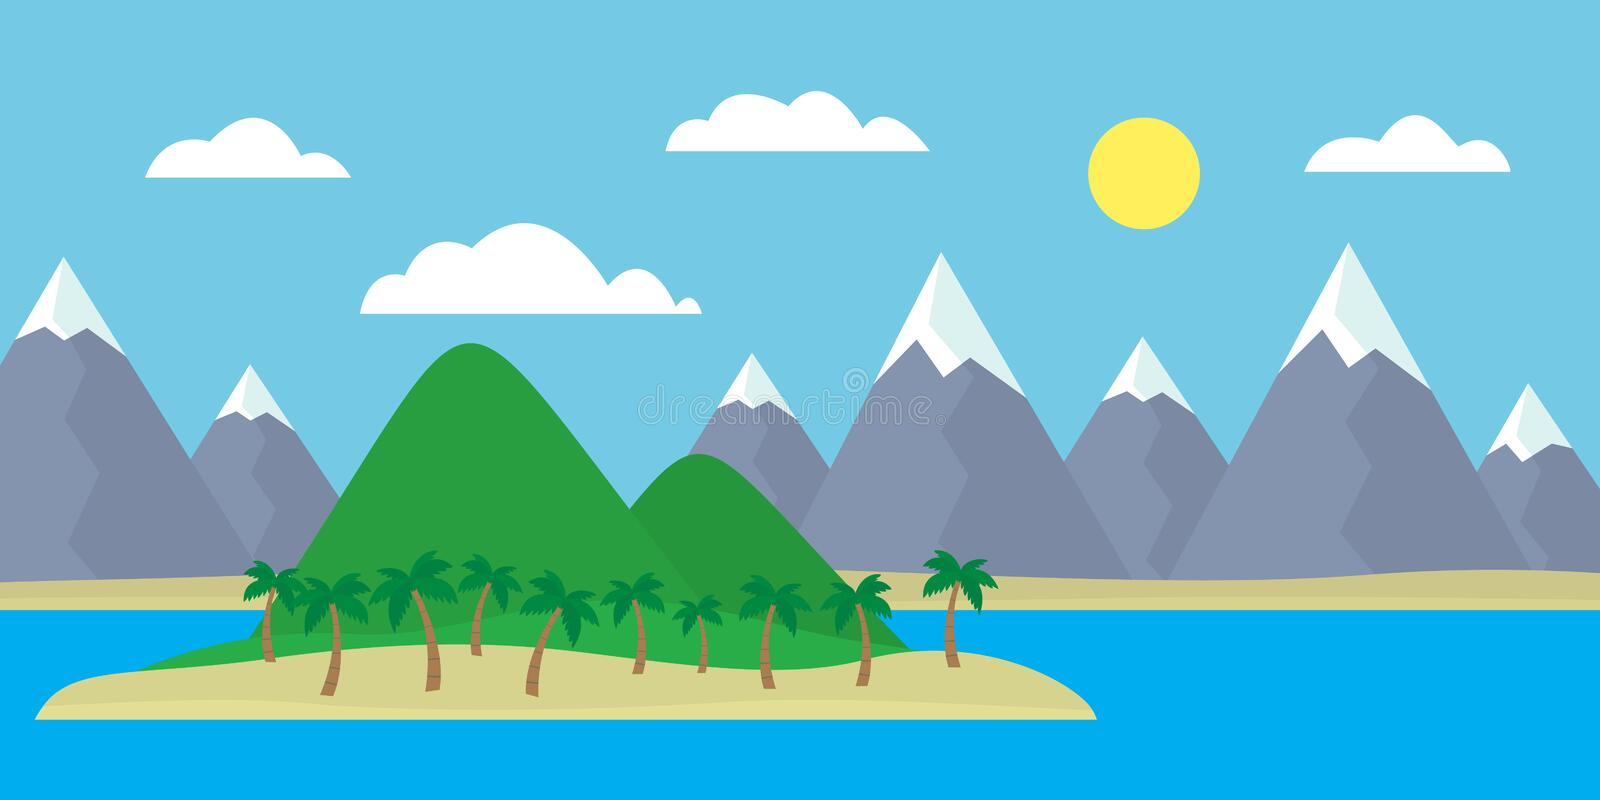 Mountain cartoon view of an island in the sea with green hills, stock illustration